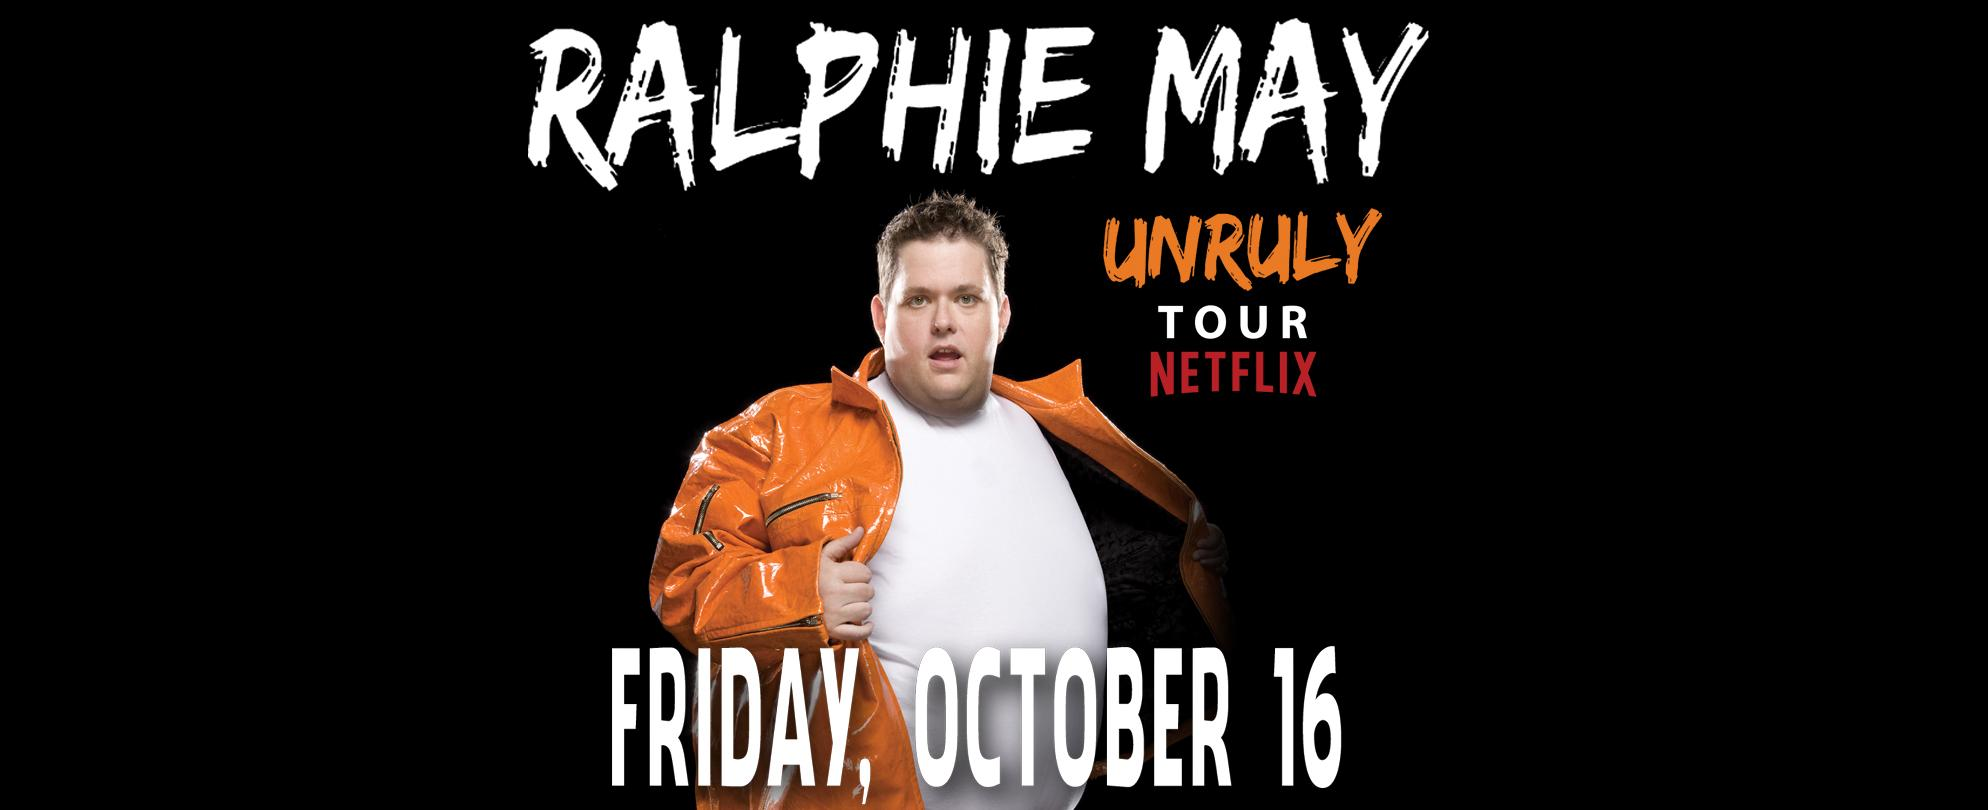 Ralphie May: Netflix Unruly Tour